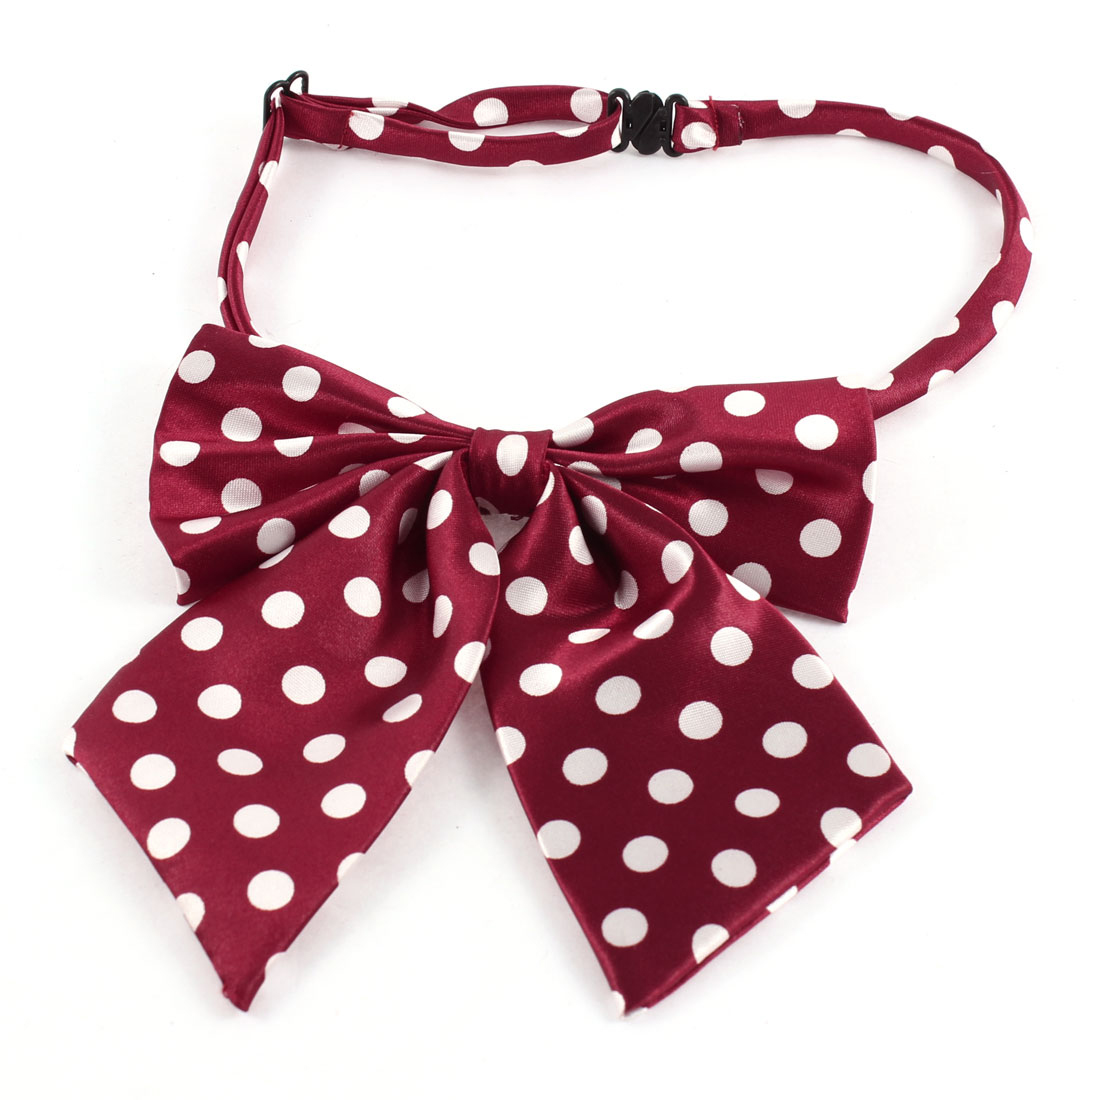 Double Layers White Dots Pattern Burgundy Pet Dog Puppy Cat Adjustable Band Necktie